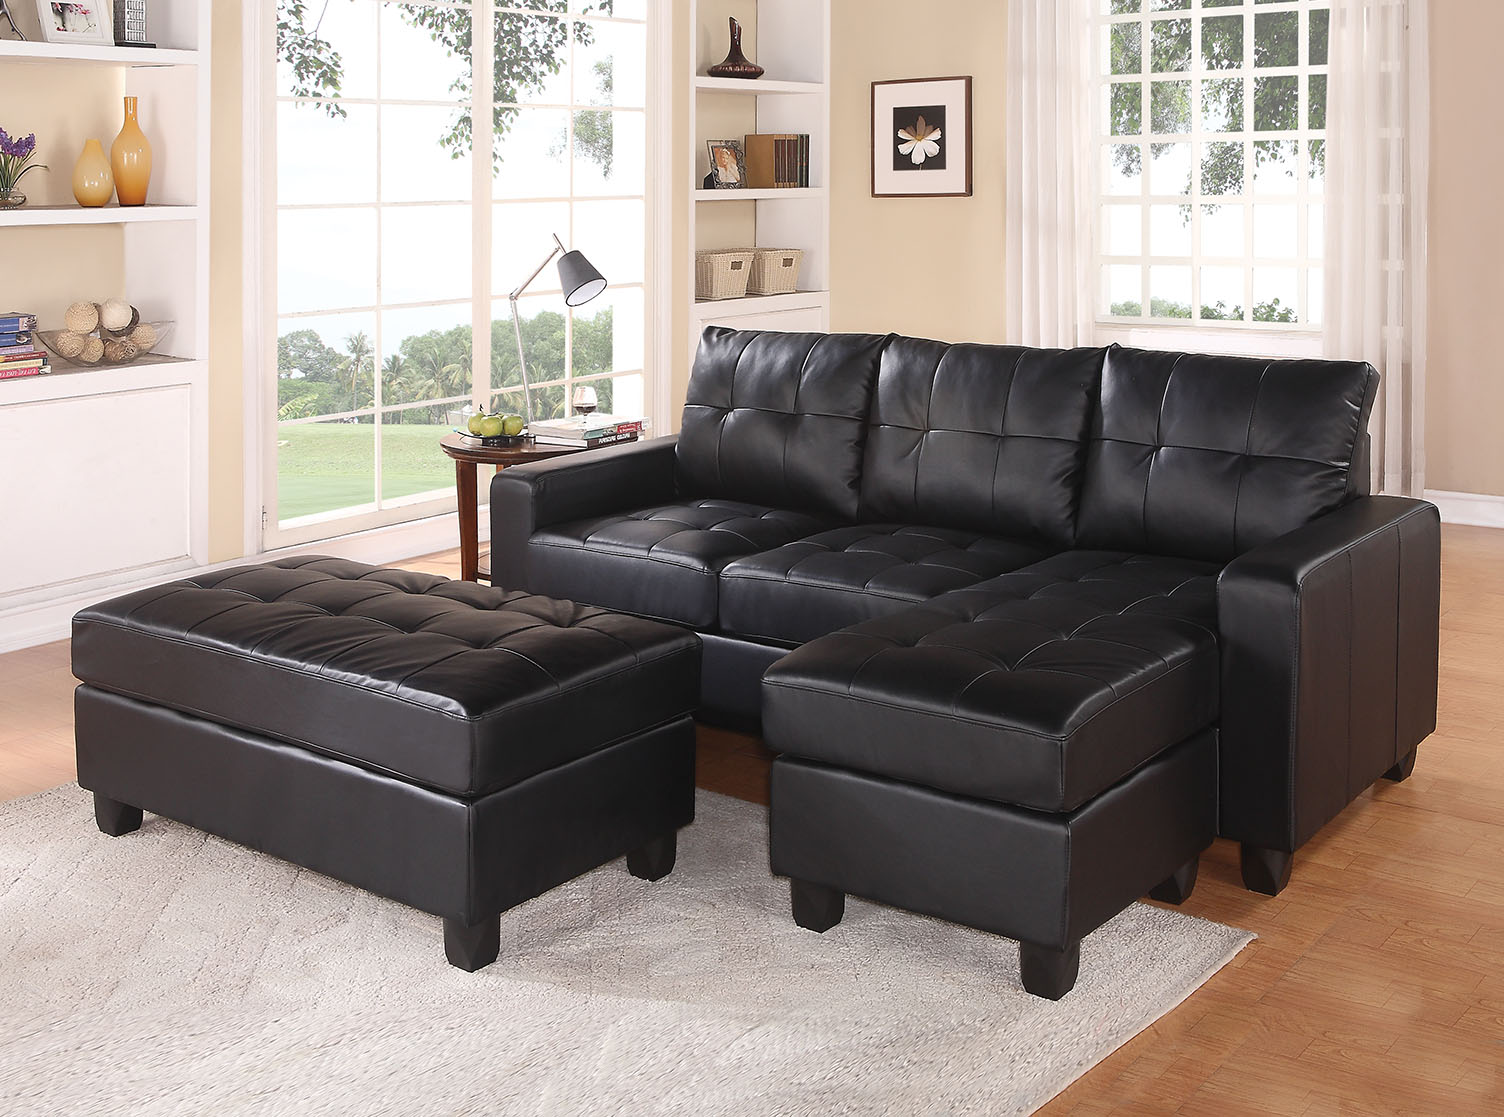 "83"" X 57"" X 35"" Black Bonded Leather Match Sectional Sofa With Ottoman"